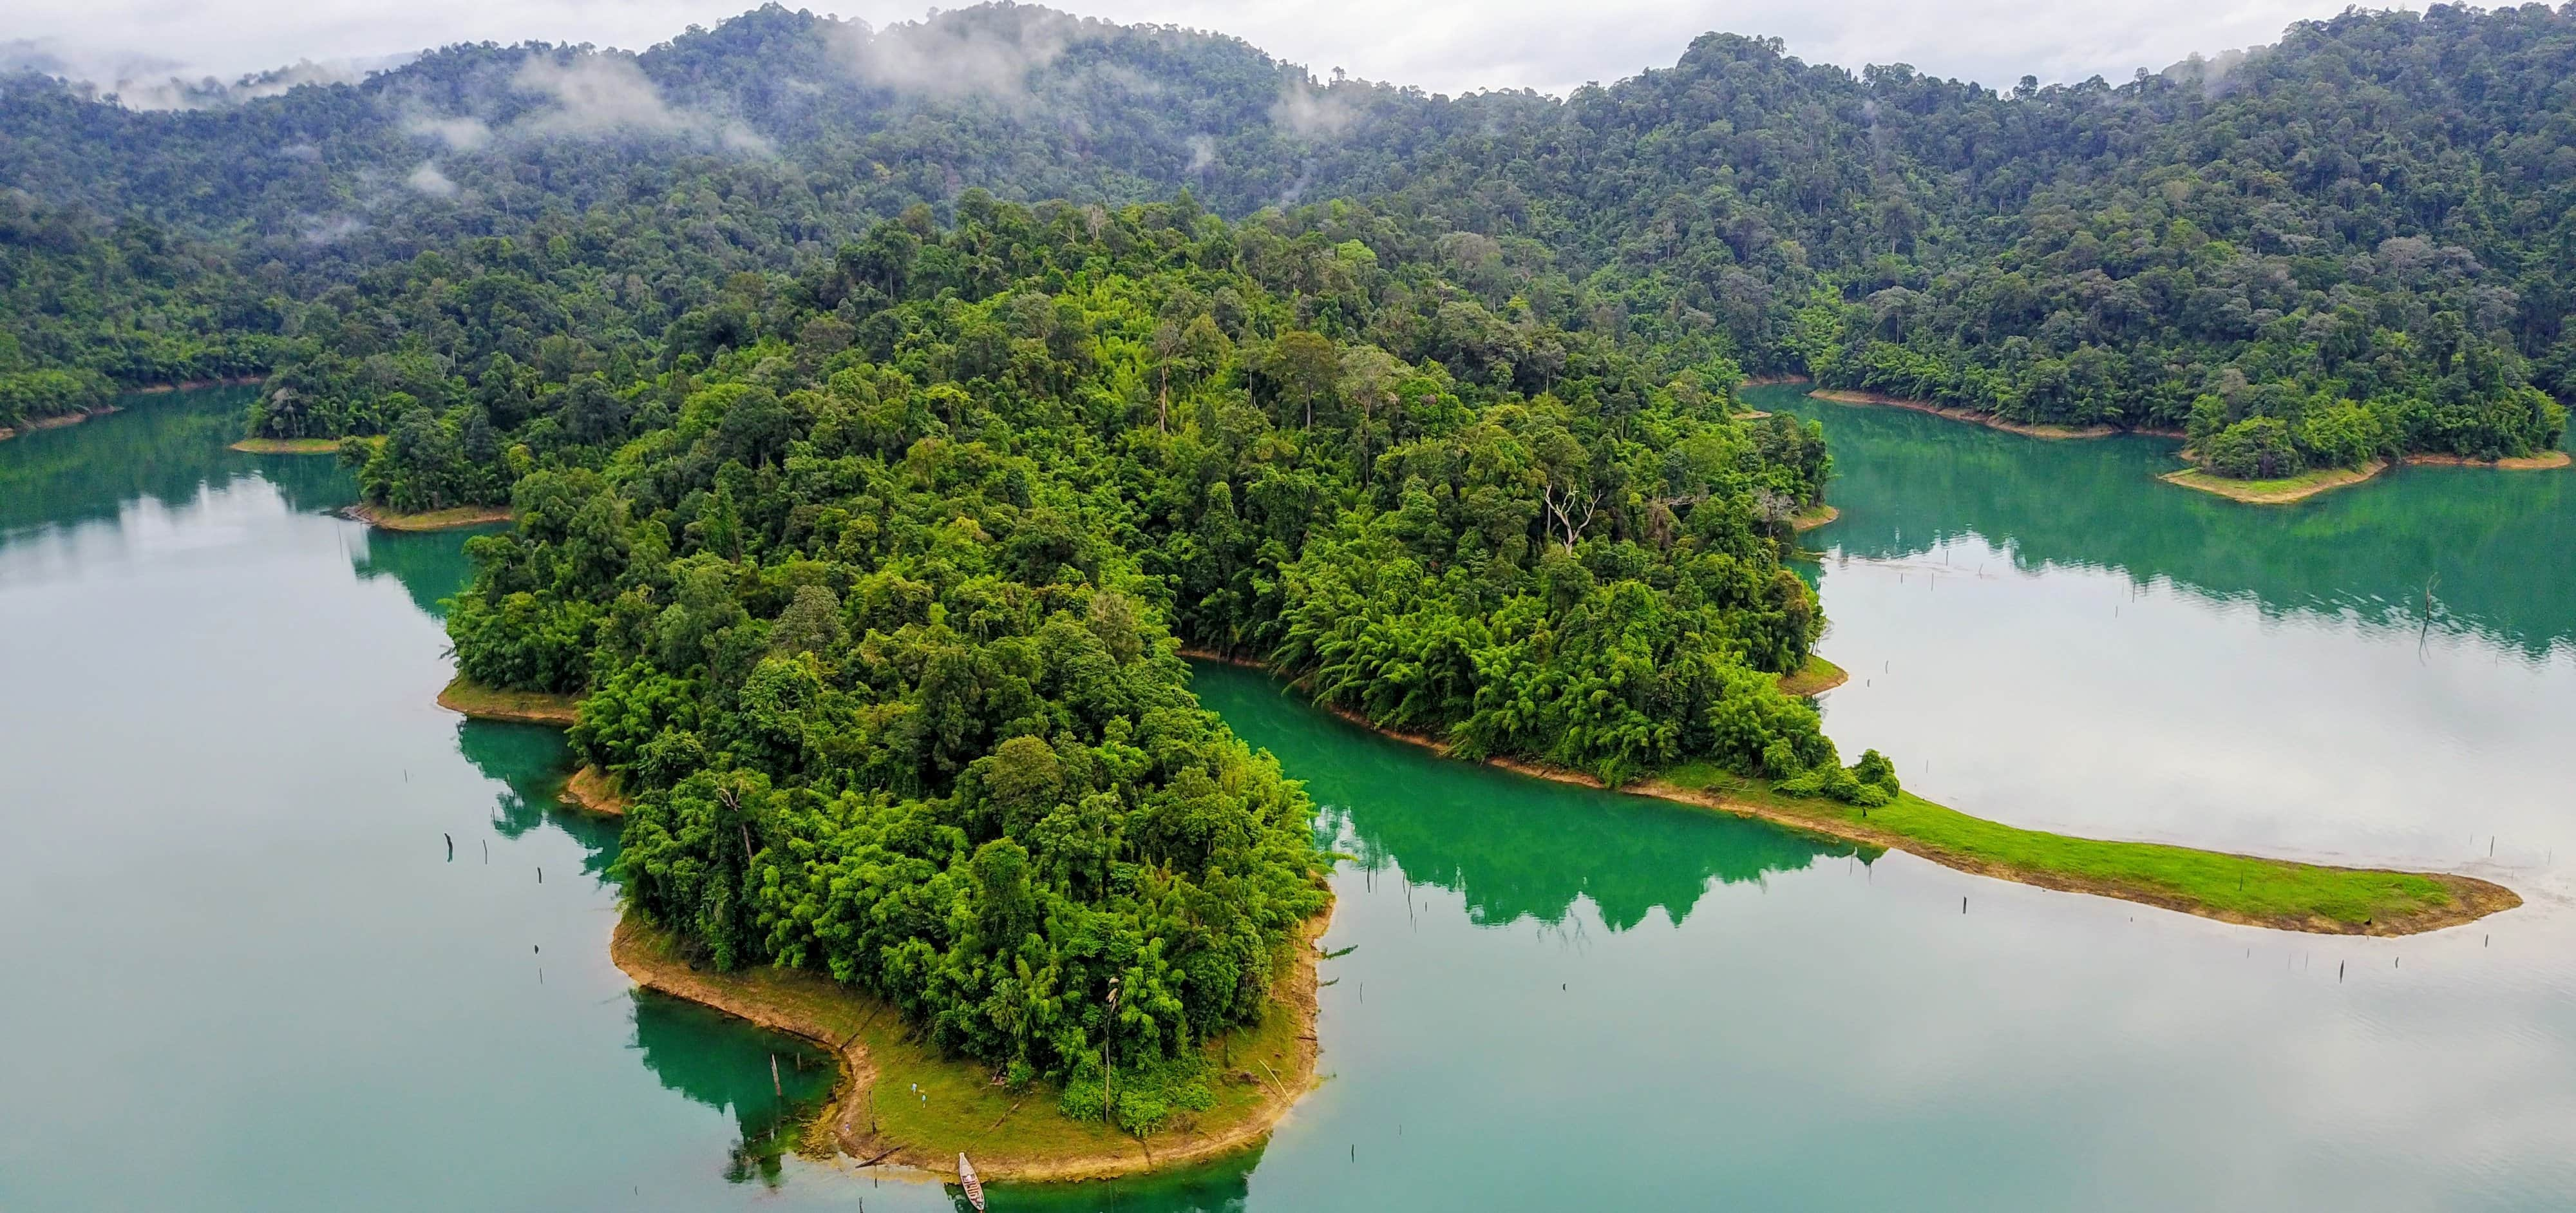 Khao Sok - lush forest surrounded by the lake